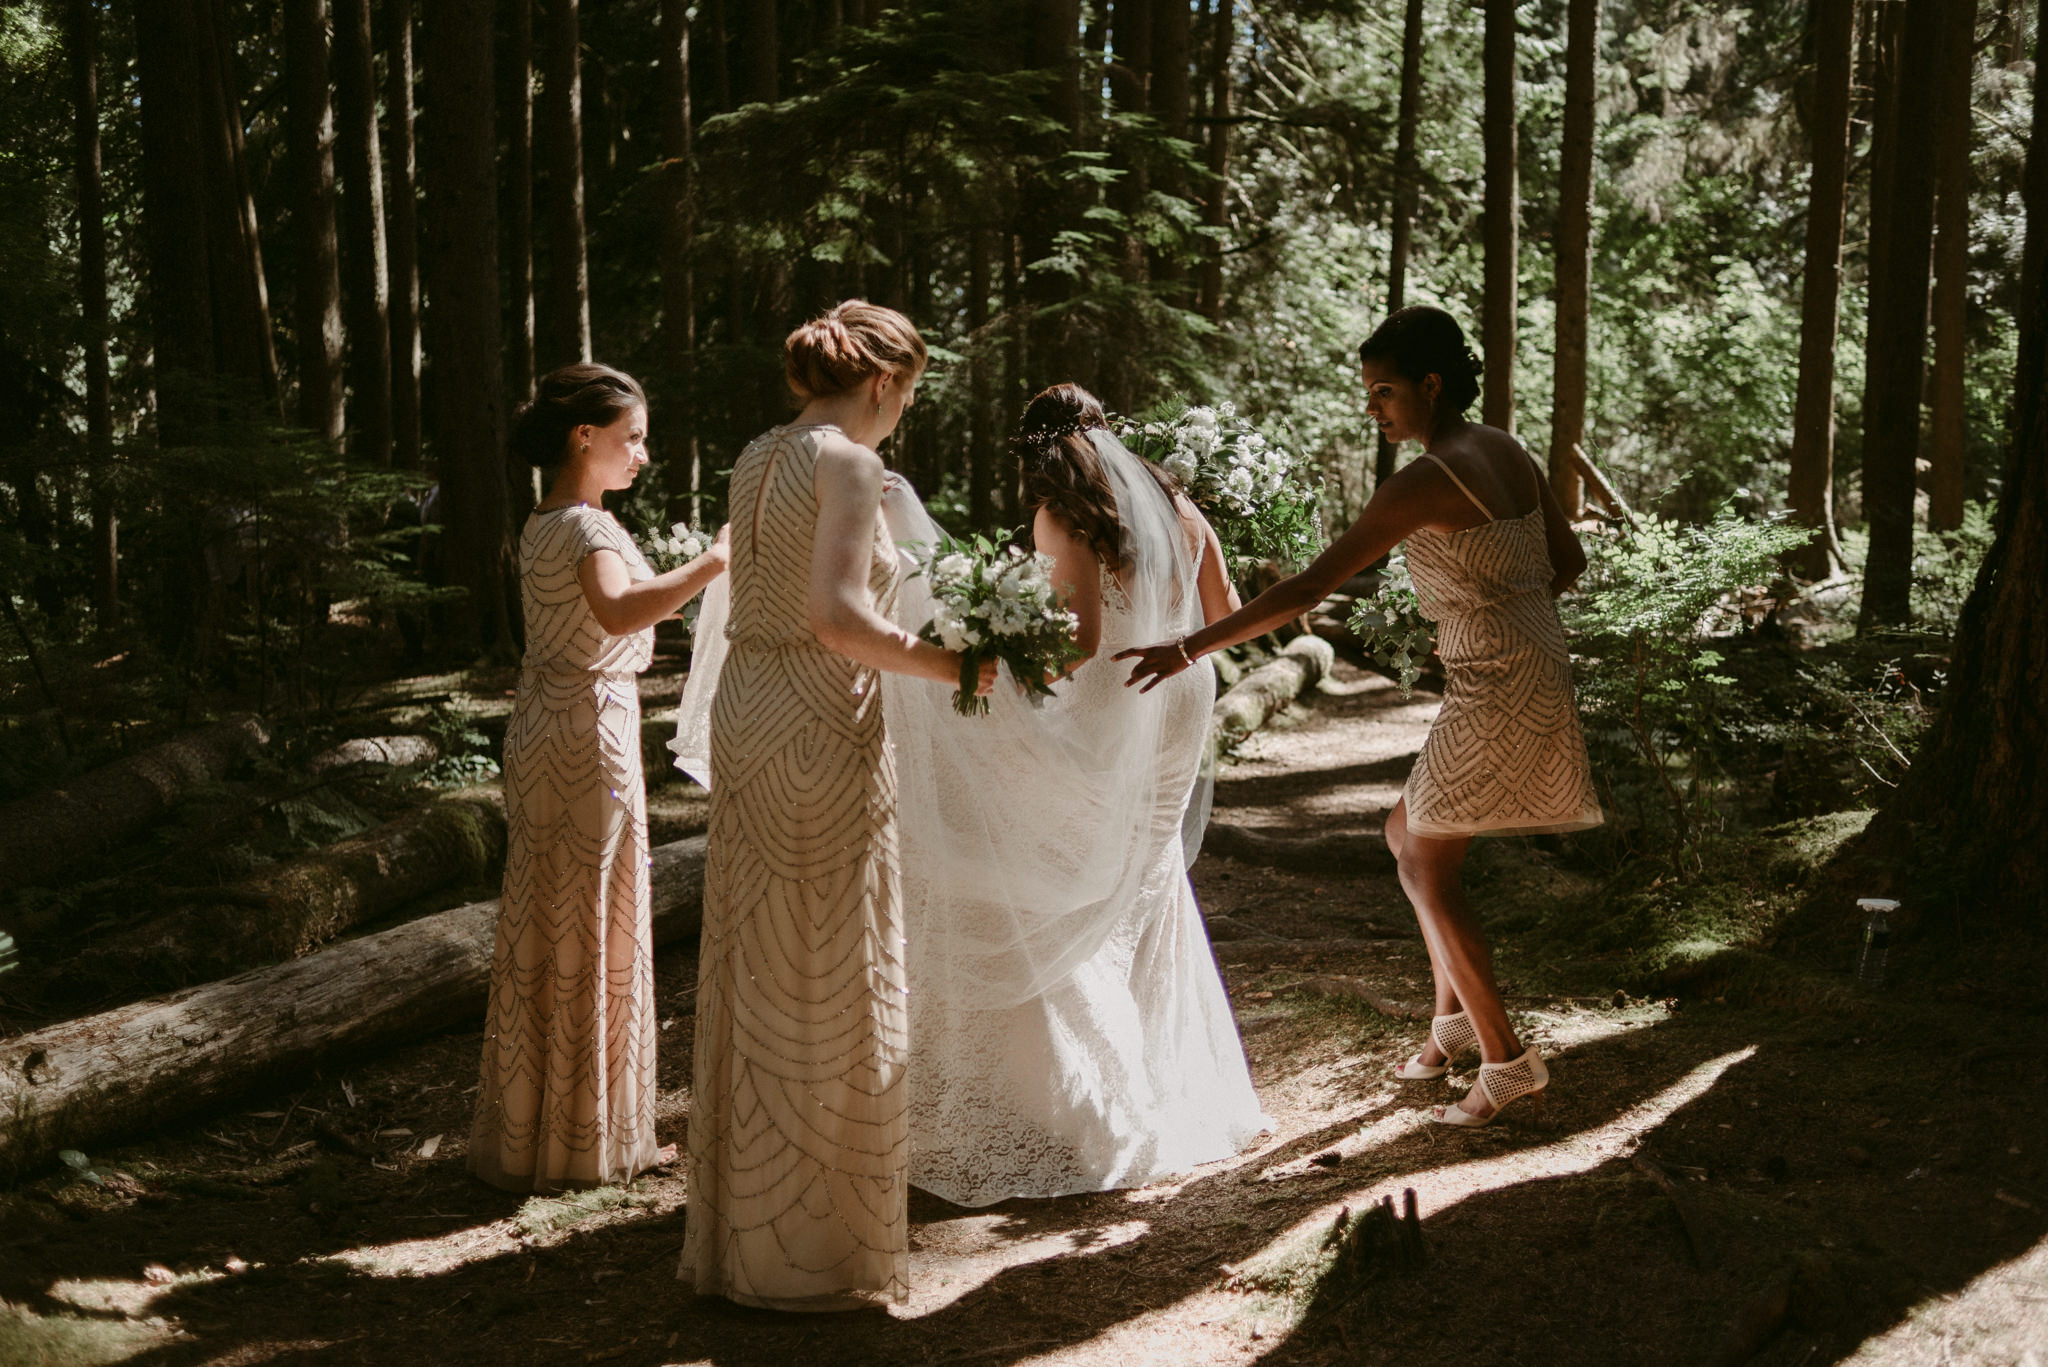 bridesmaids helping bride with dress in forest